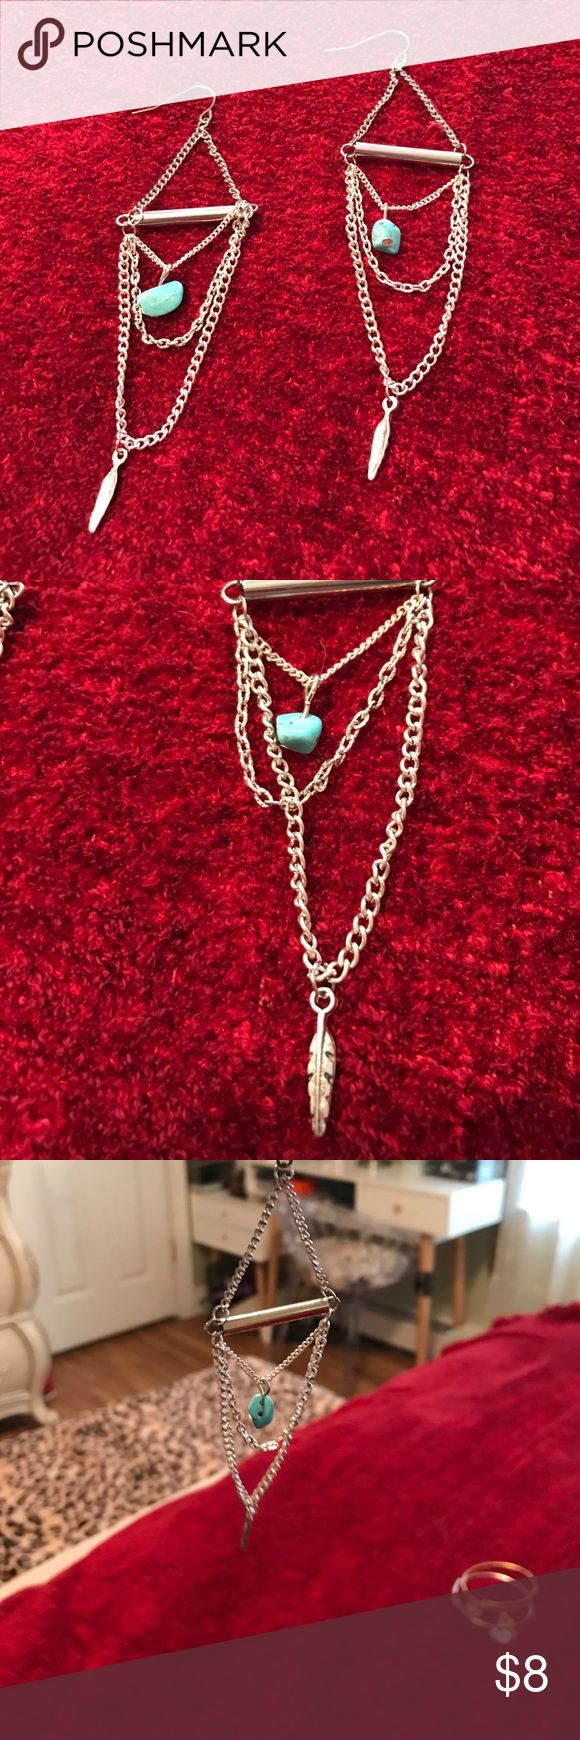 Earrings Beautiful dangling earrings with turquoise stone and feathers on the ends Jewelry Earrings